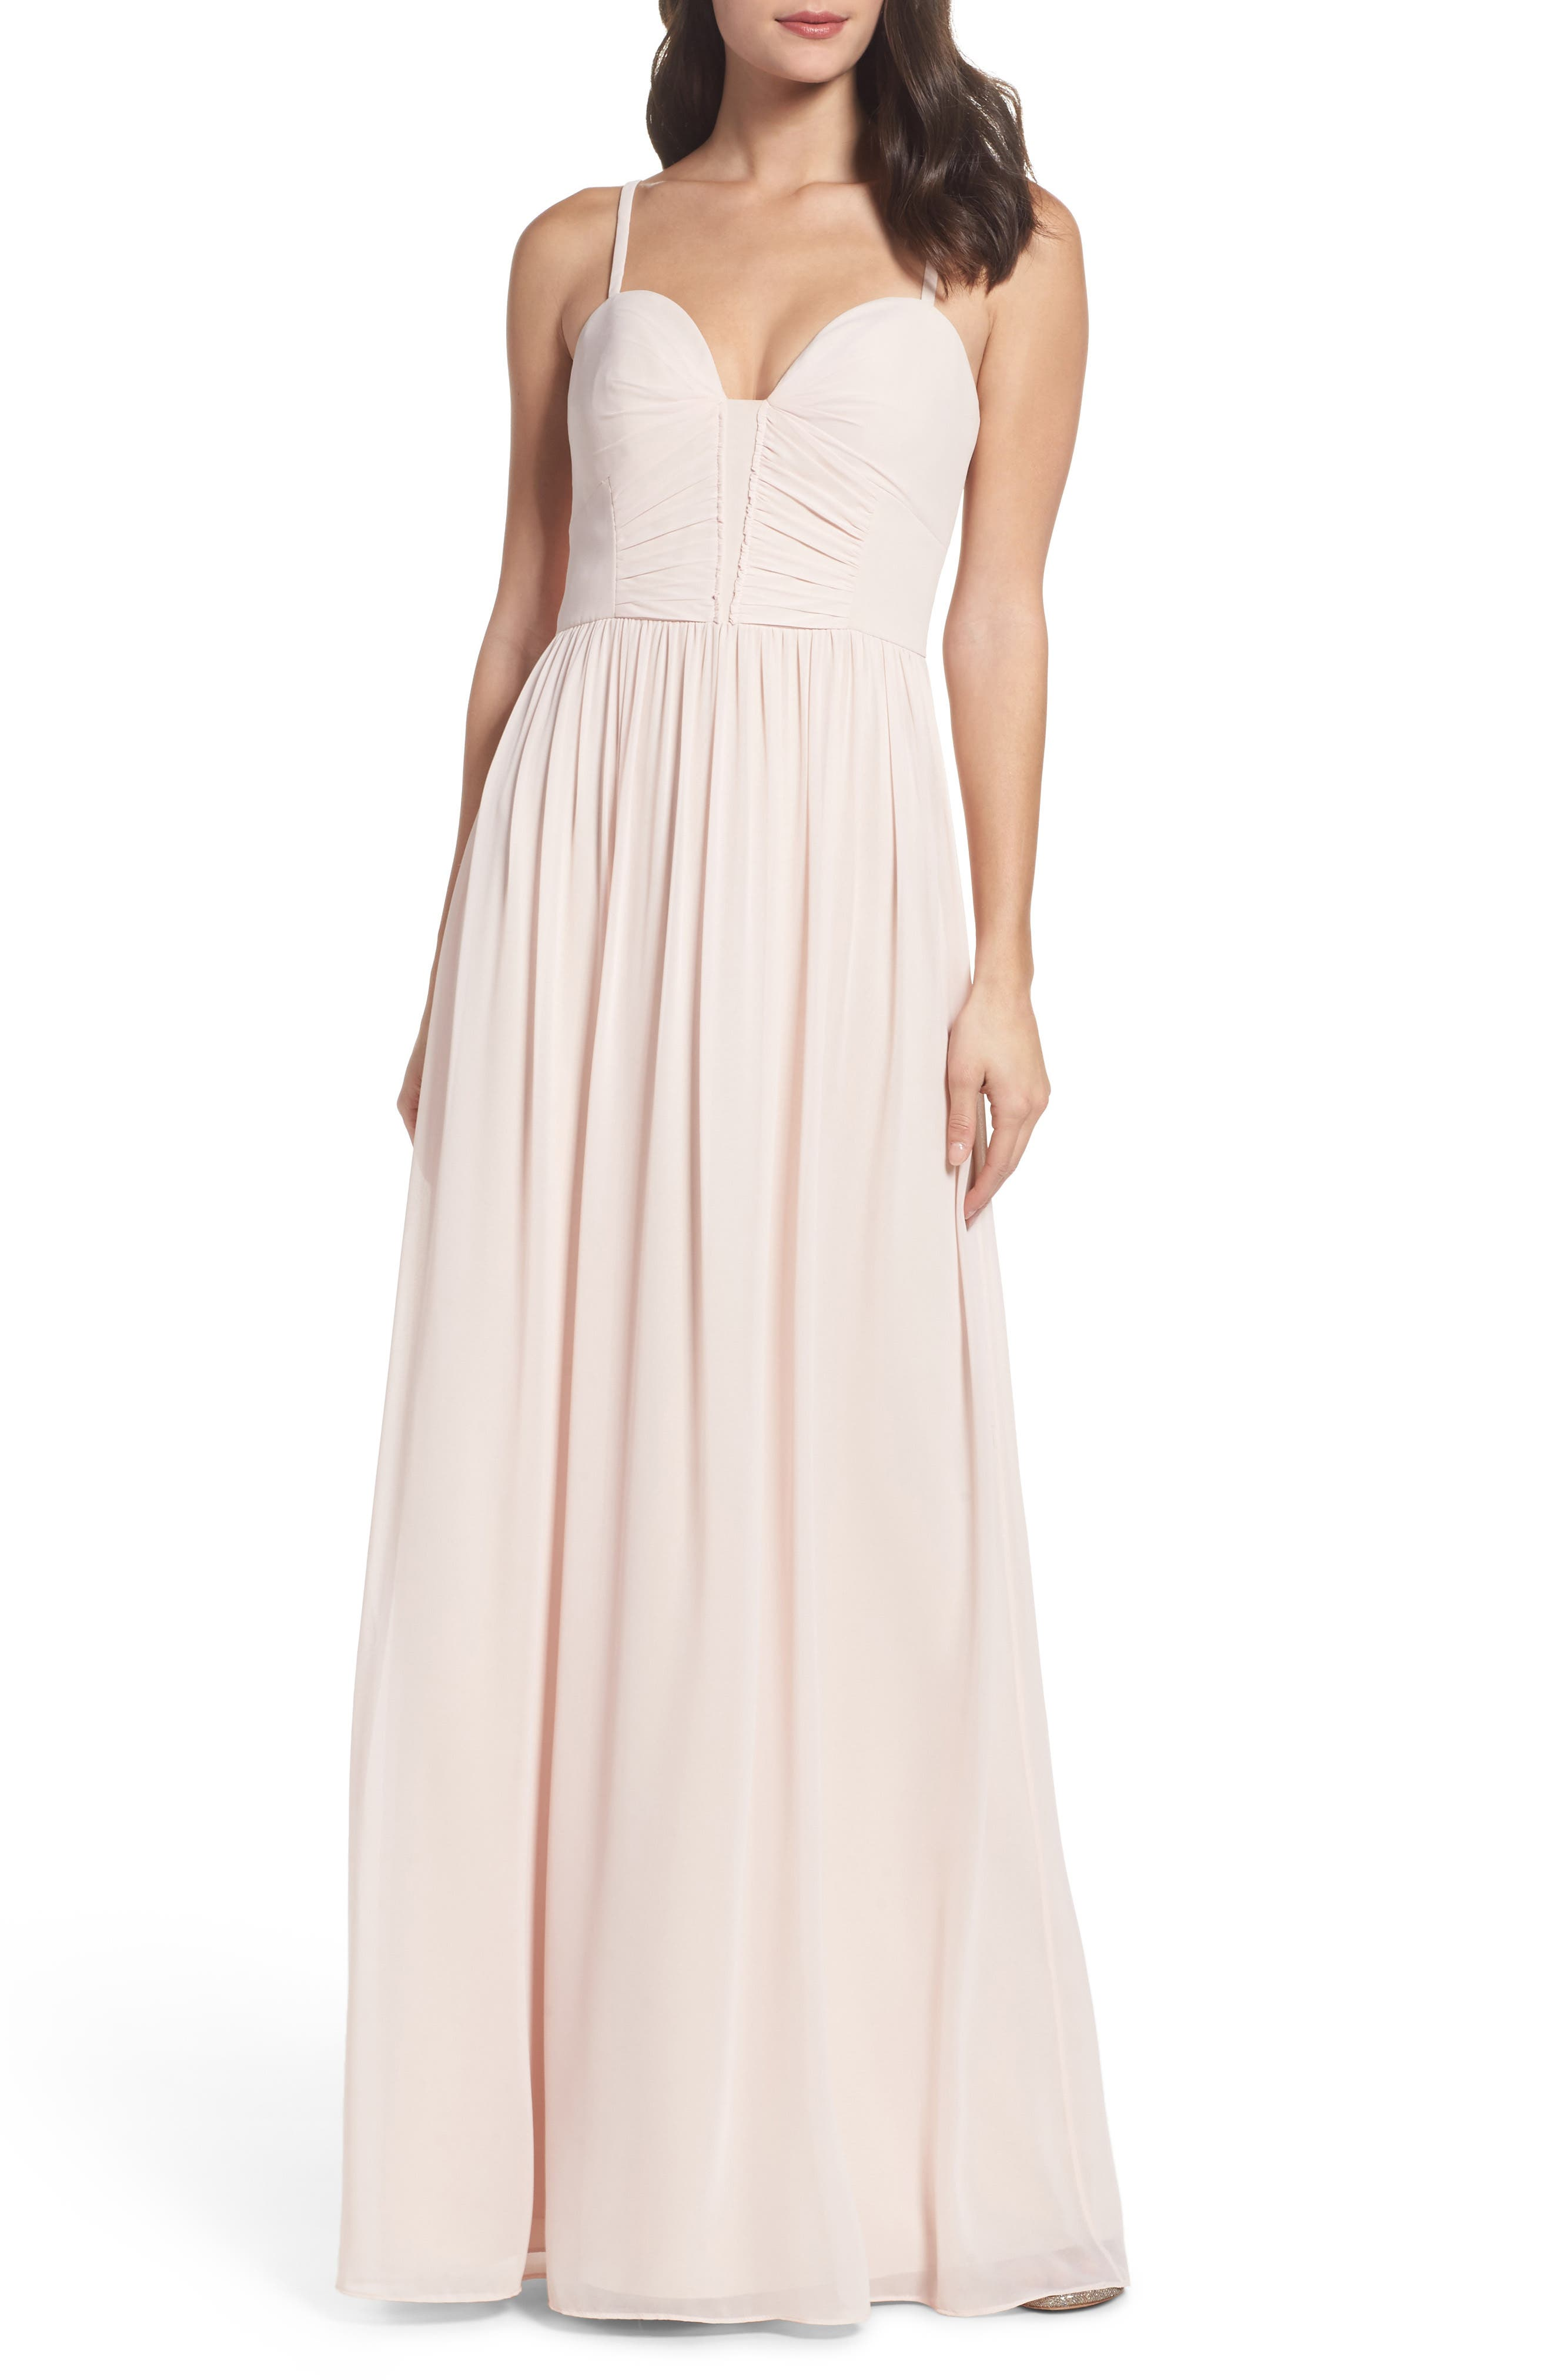 Ruffle Detail A-Line Chiffon Gown,                             Main thumbnail 1, color,                             DUSTY ROSE